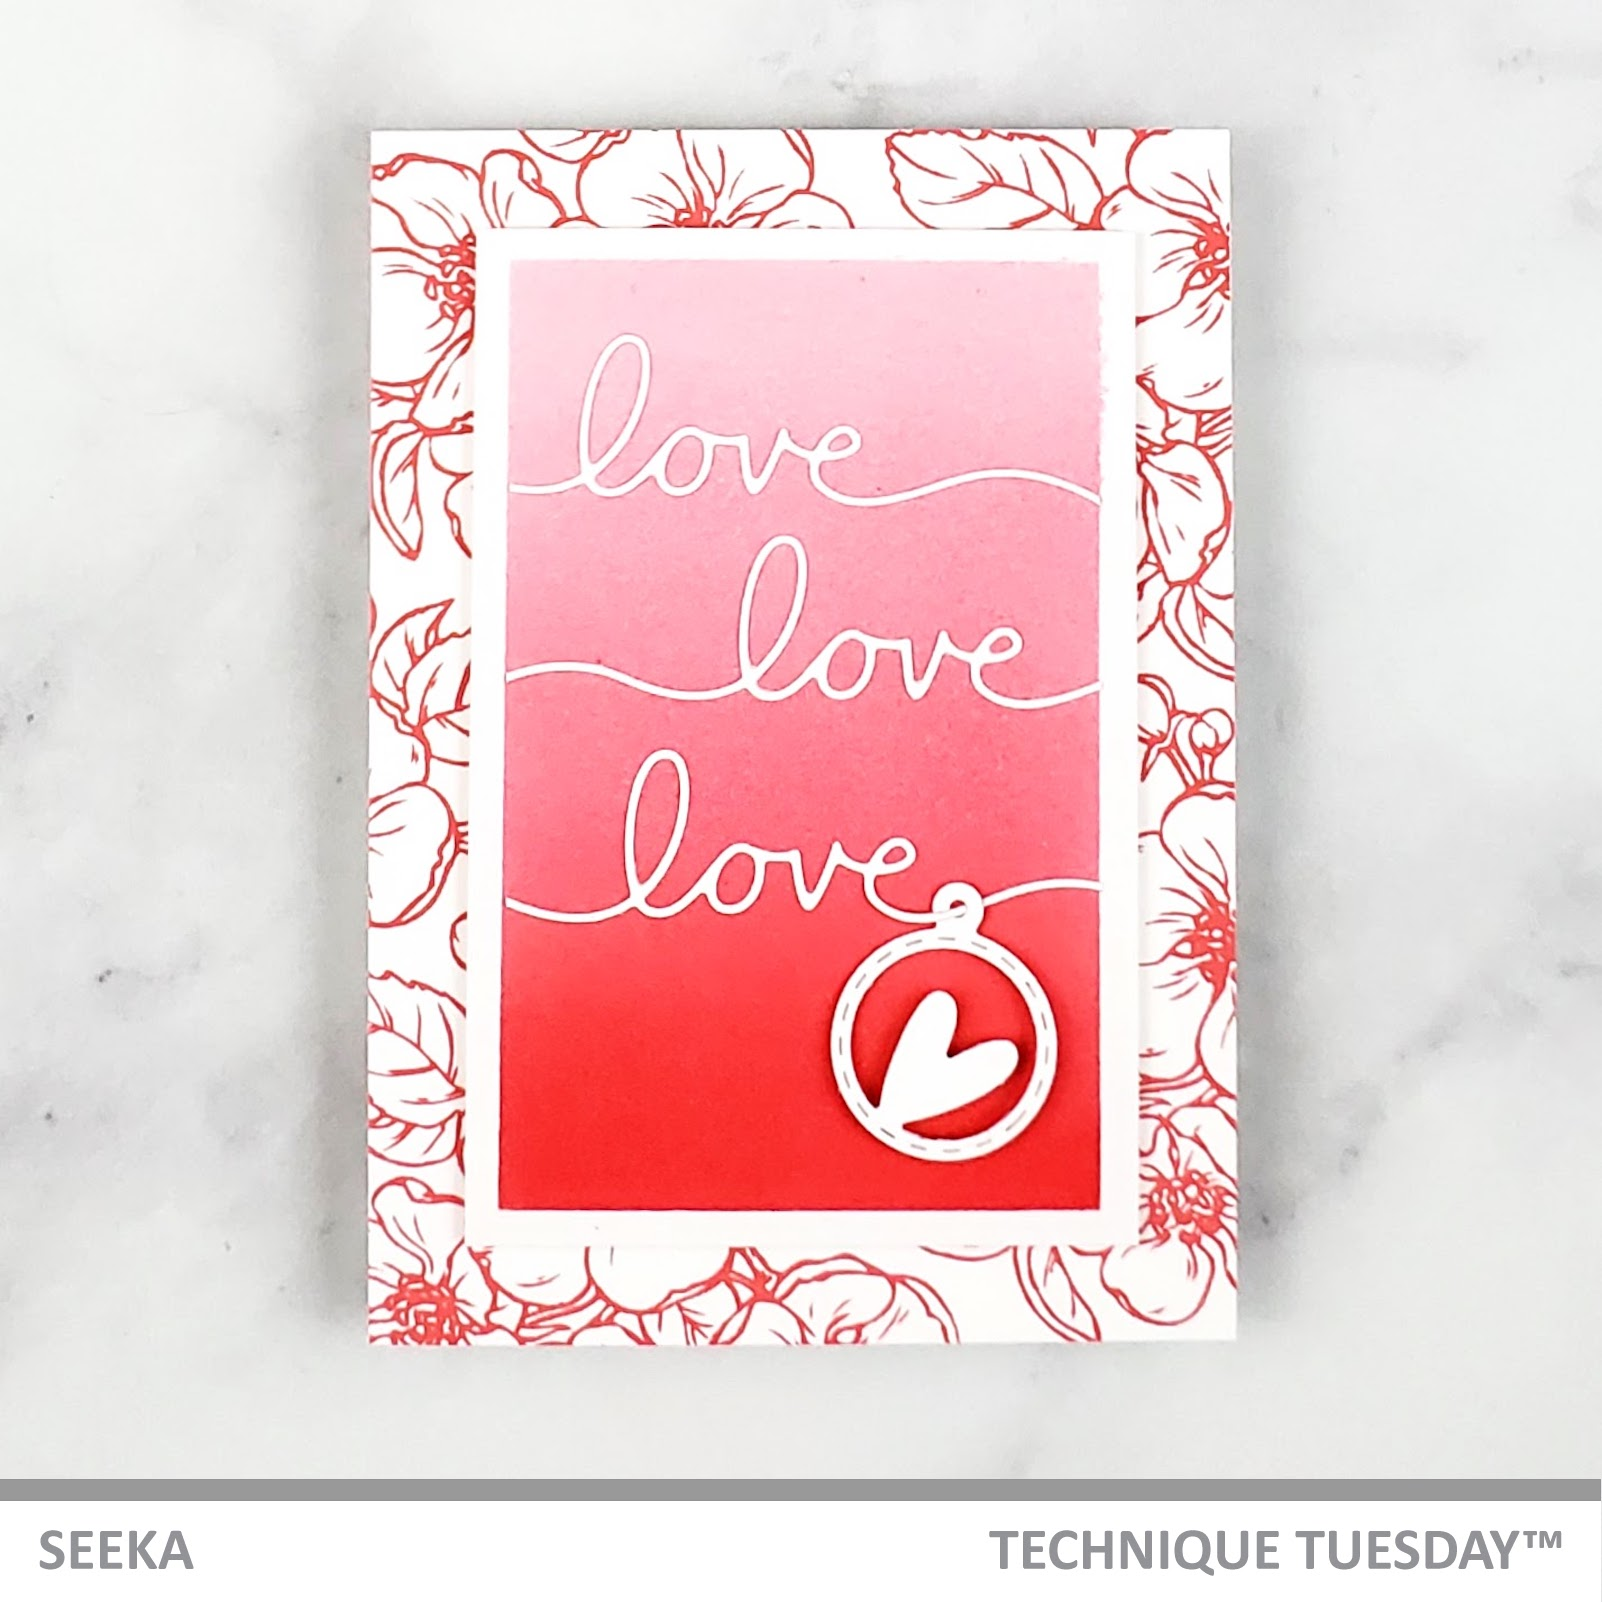 Seeka - Long Love 1